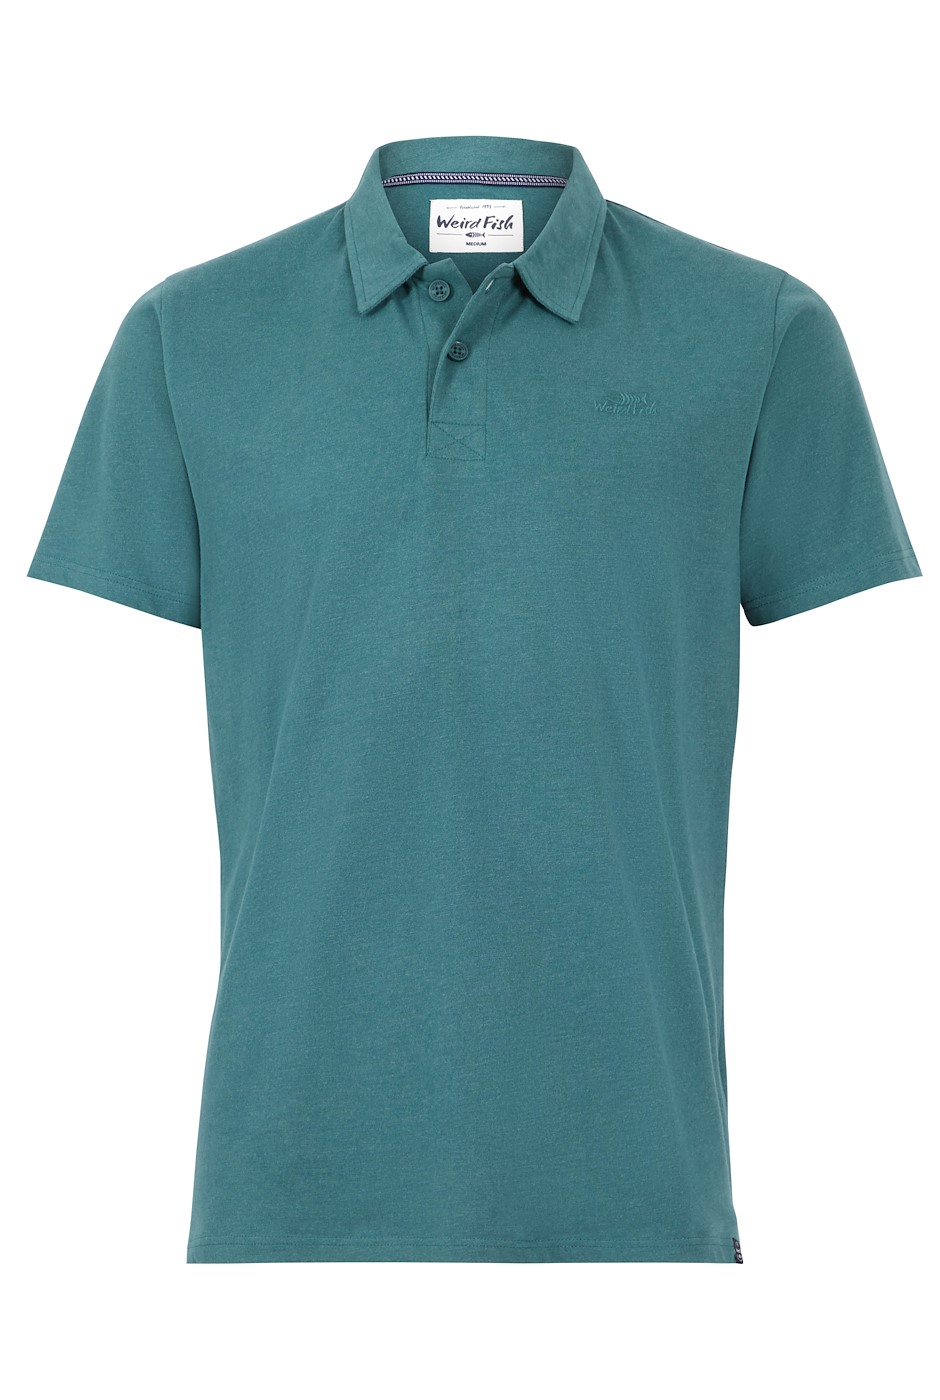 Quay Branded Polo Ivy